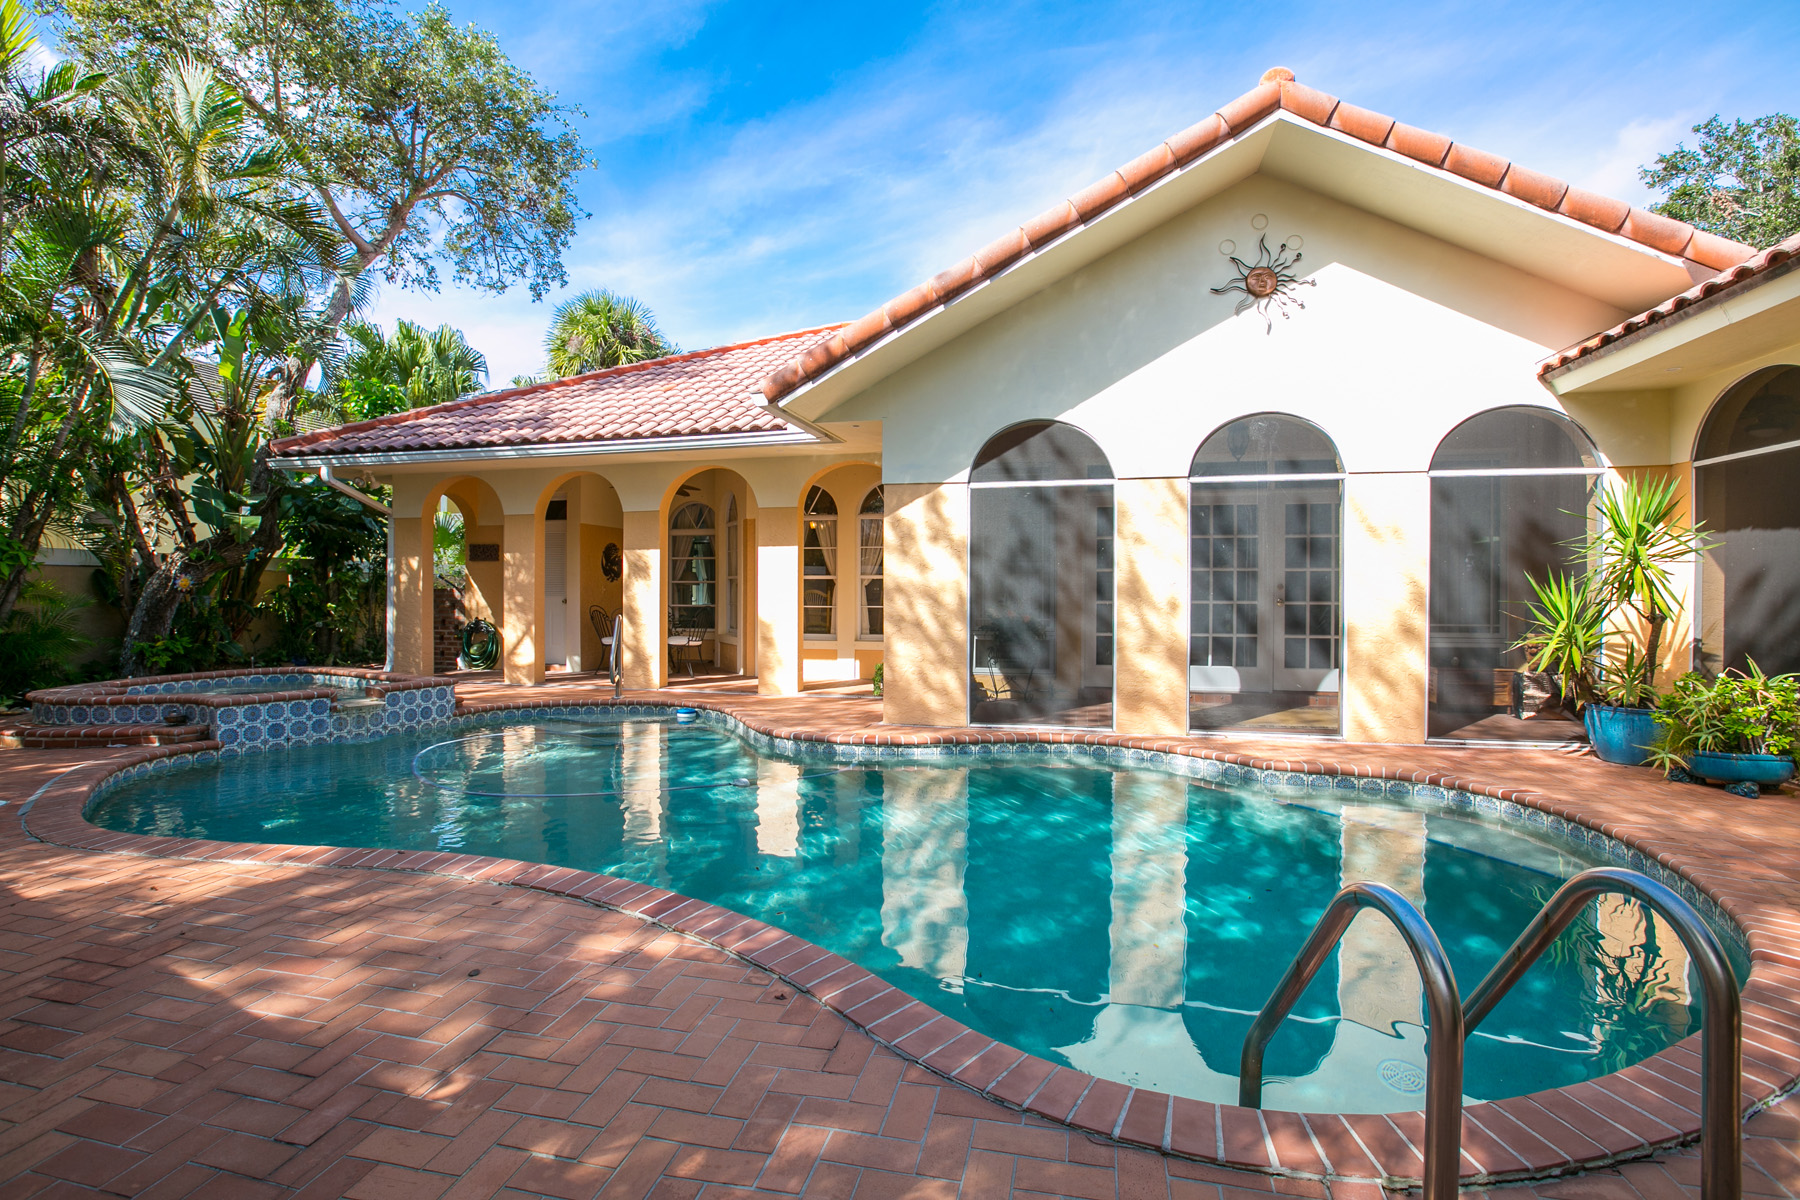 Castaway Cove home for sale in Vero Beach